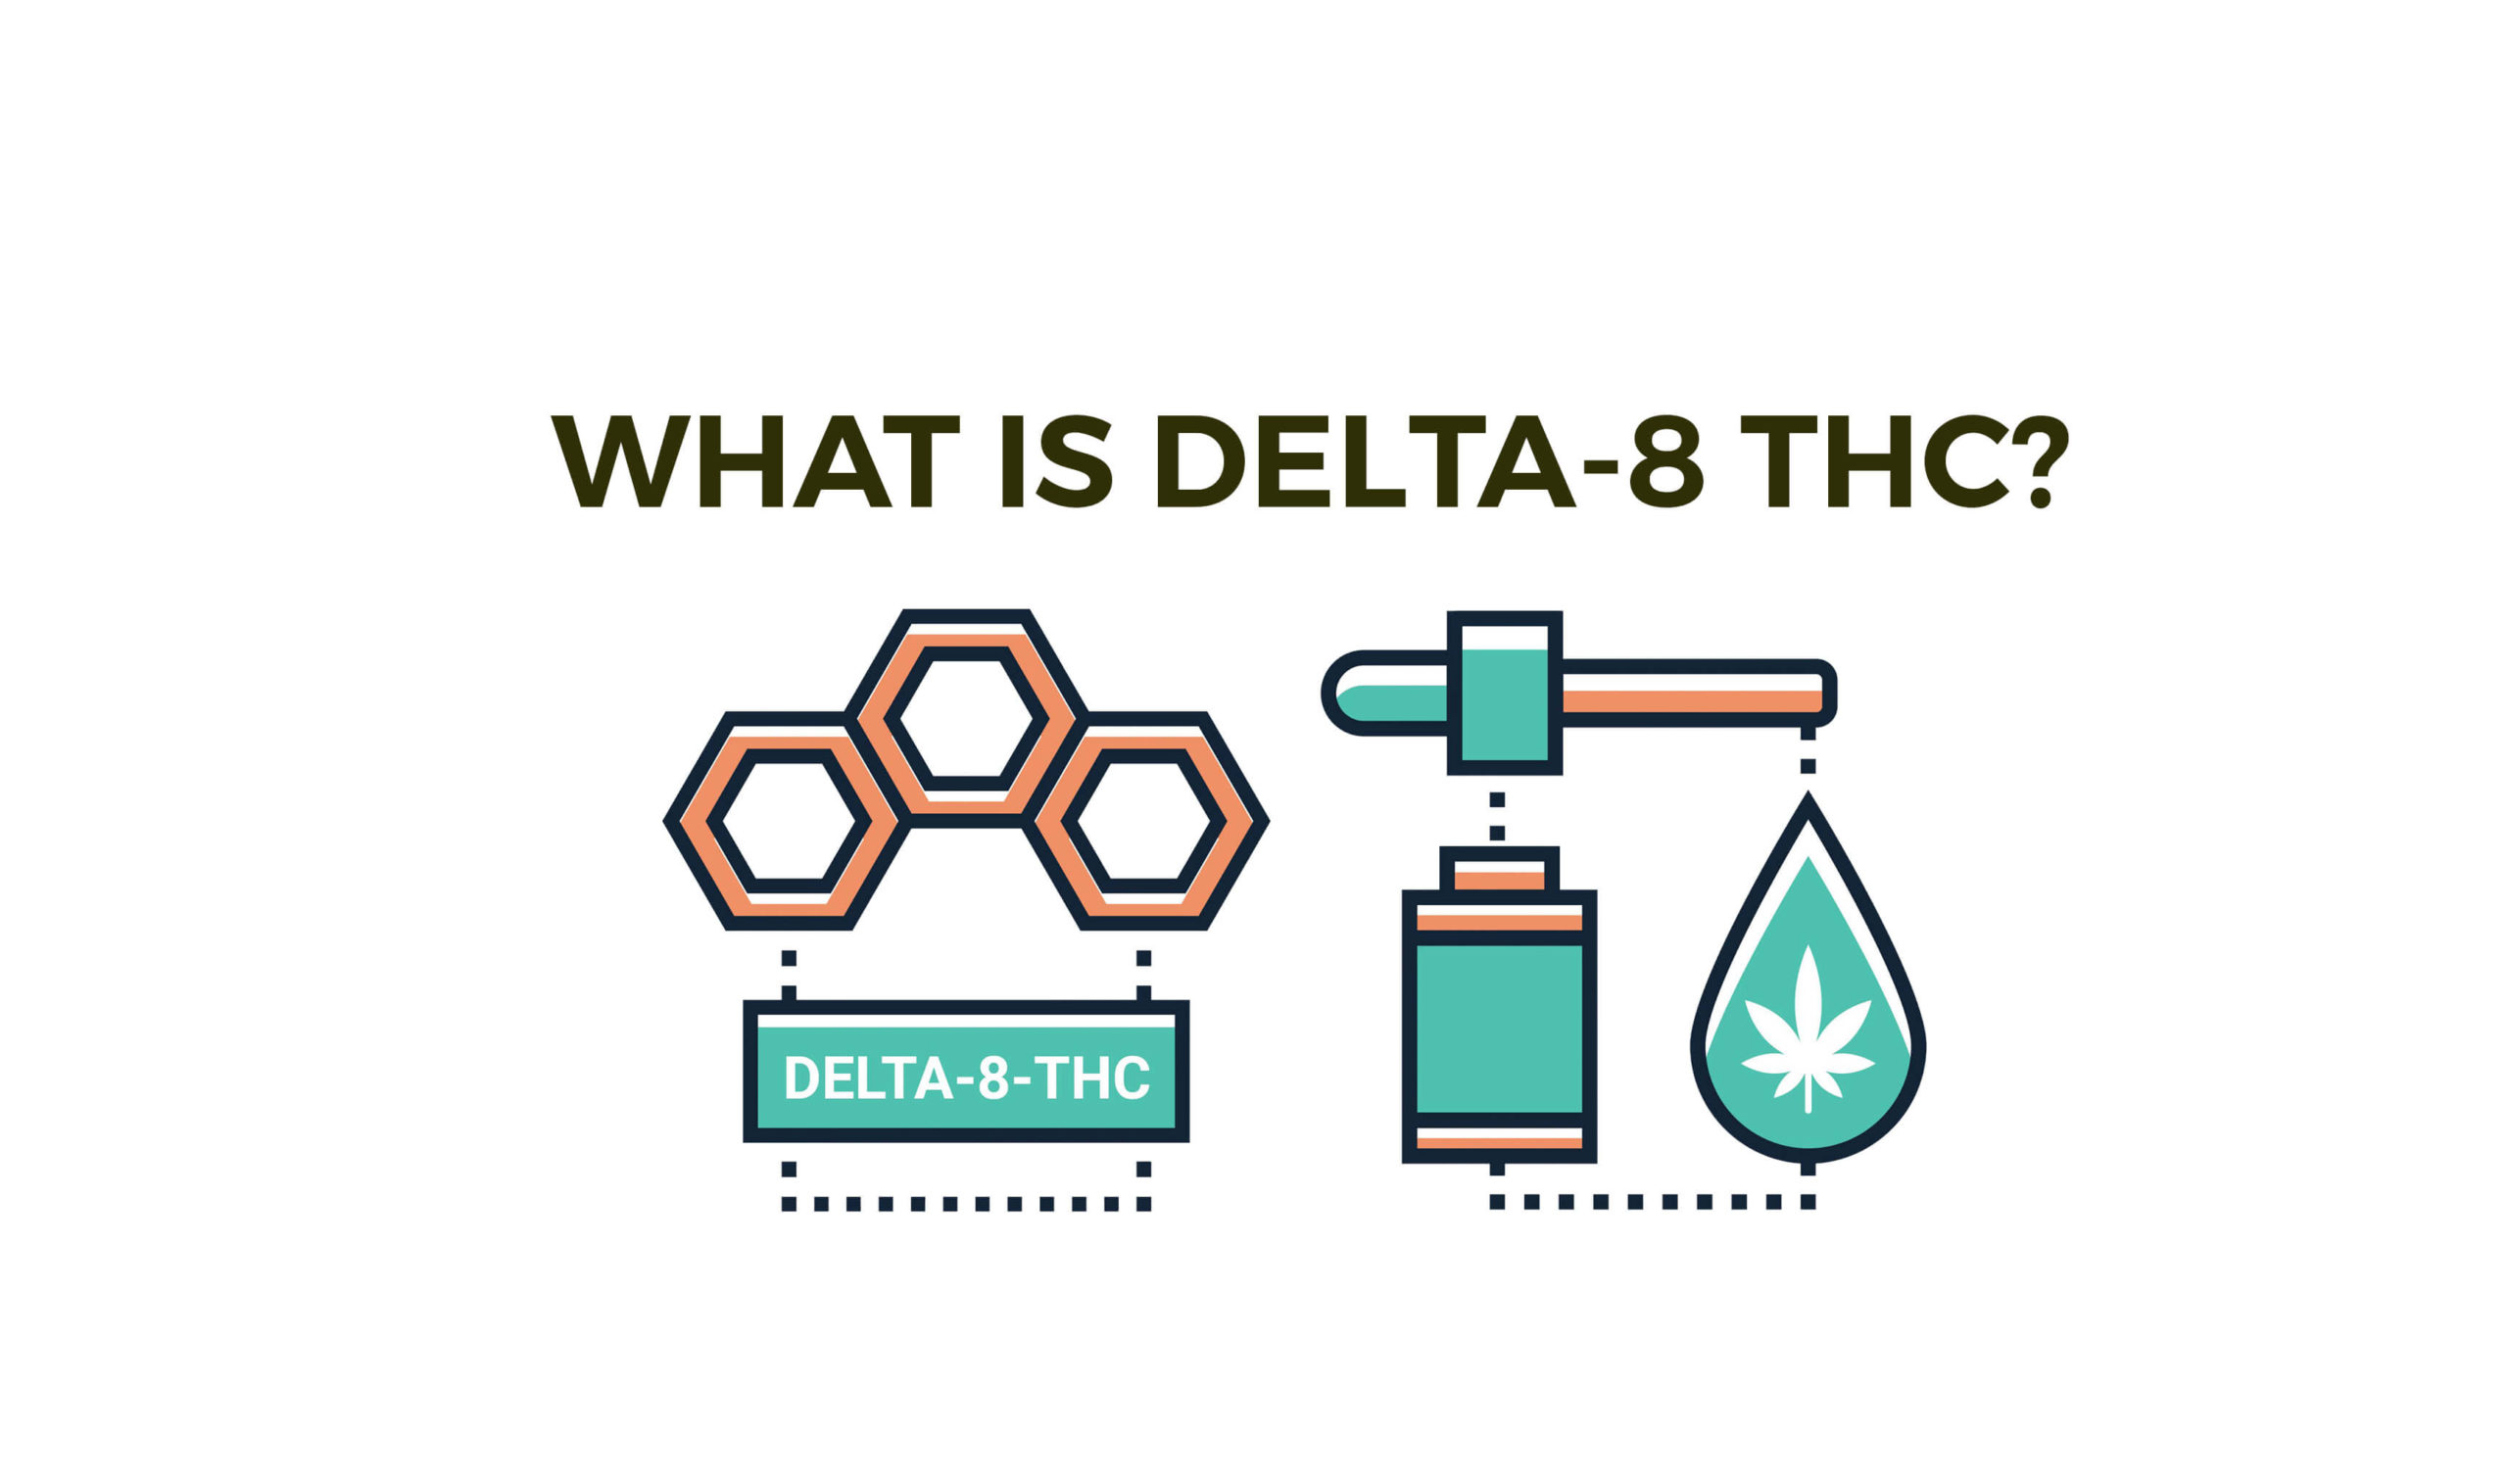 What Is Delta-8 THC